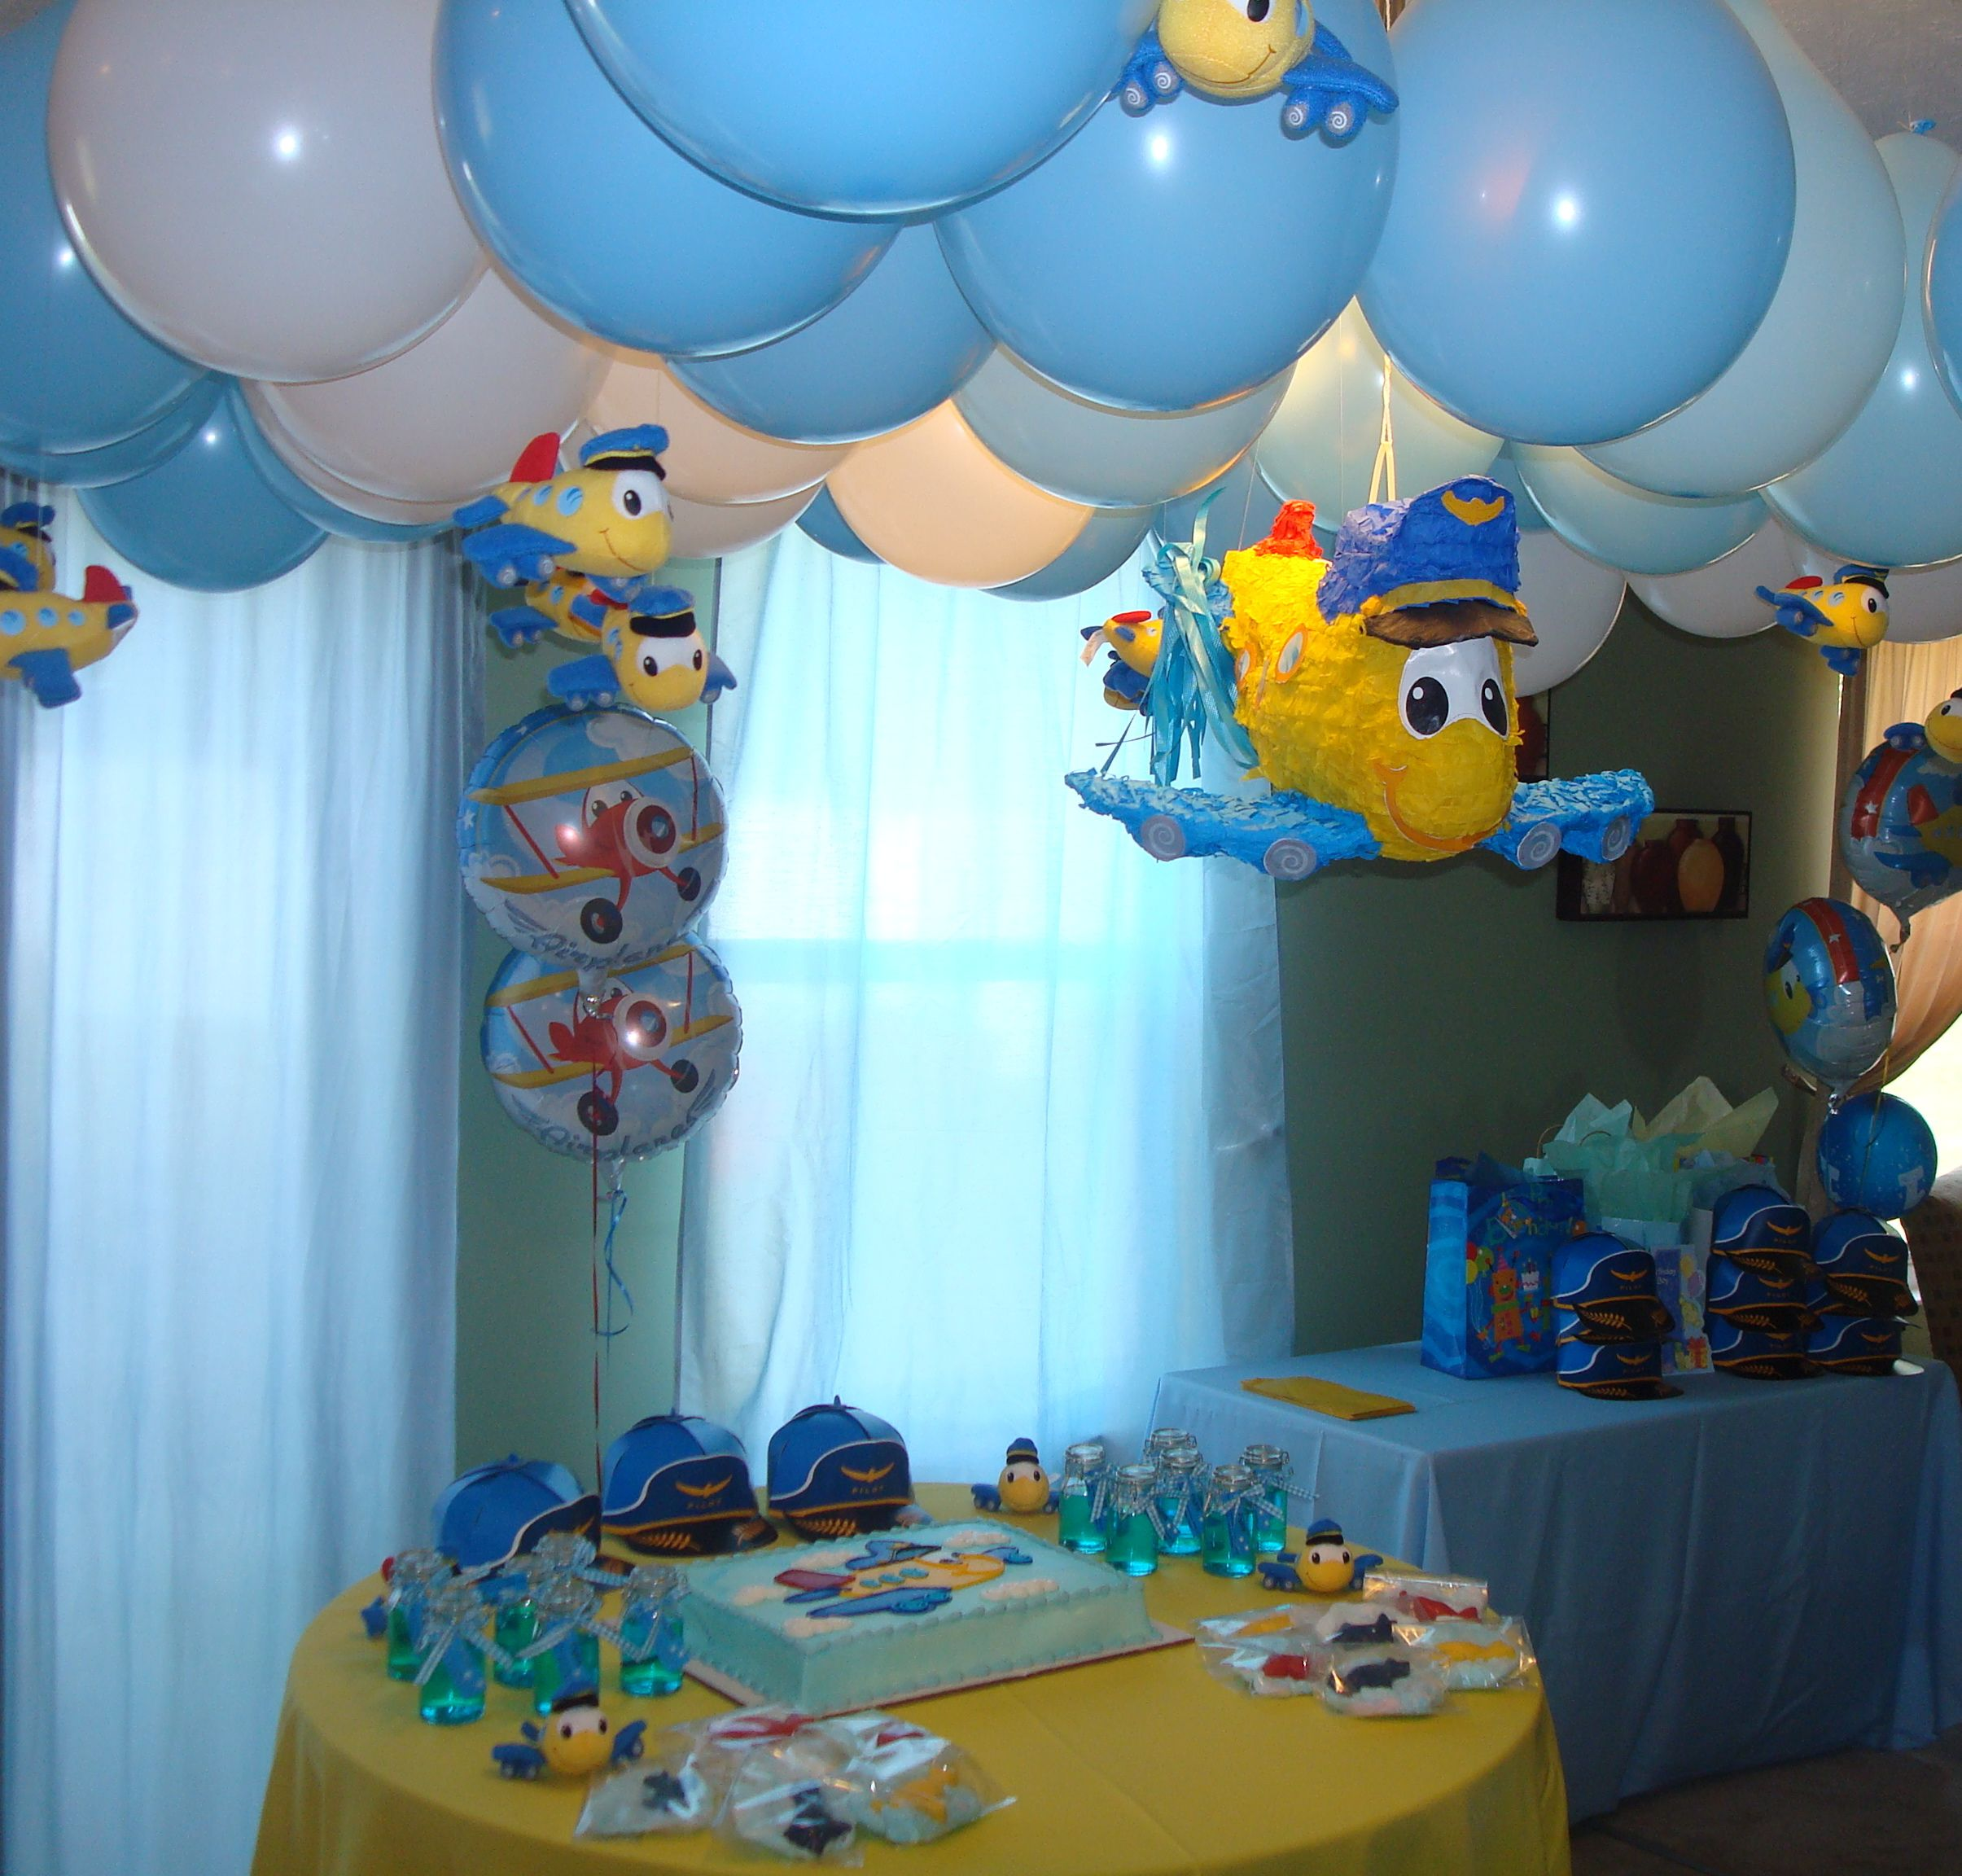 Airplane Birthday Party Get Ready For Takeoff: Airplane Theme Birthday Party.Create Your Own Sky Using